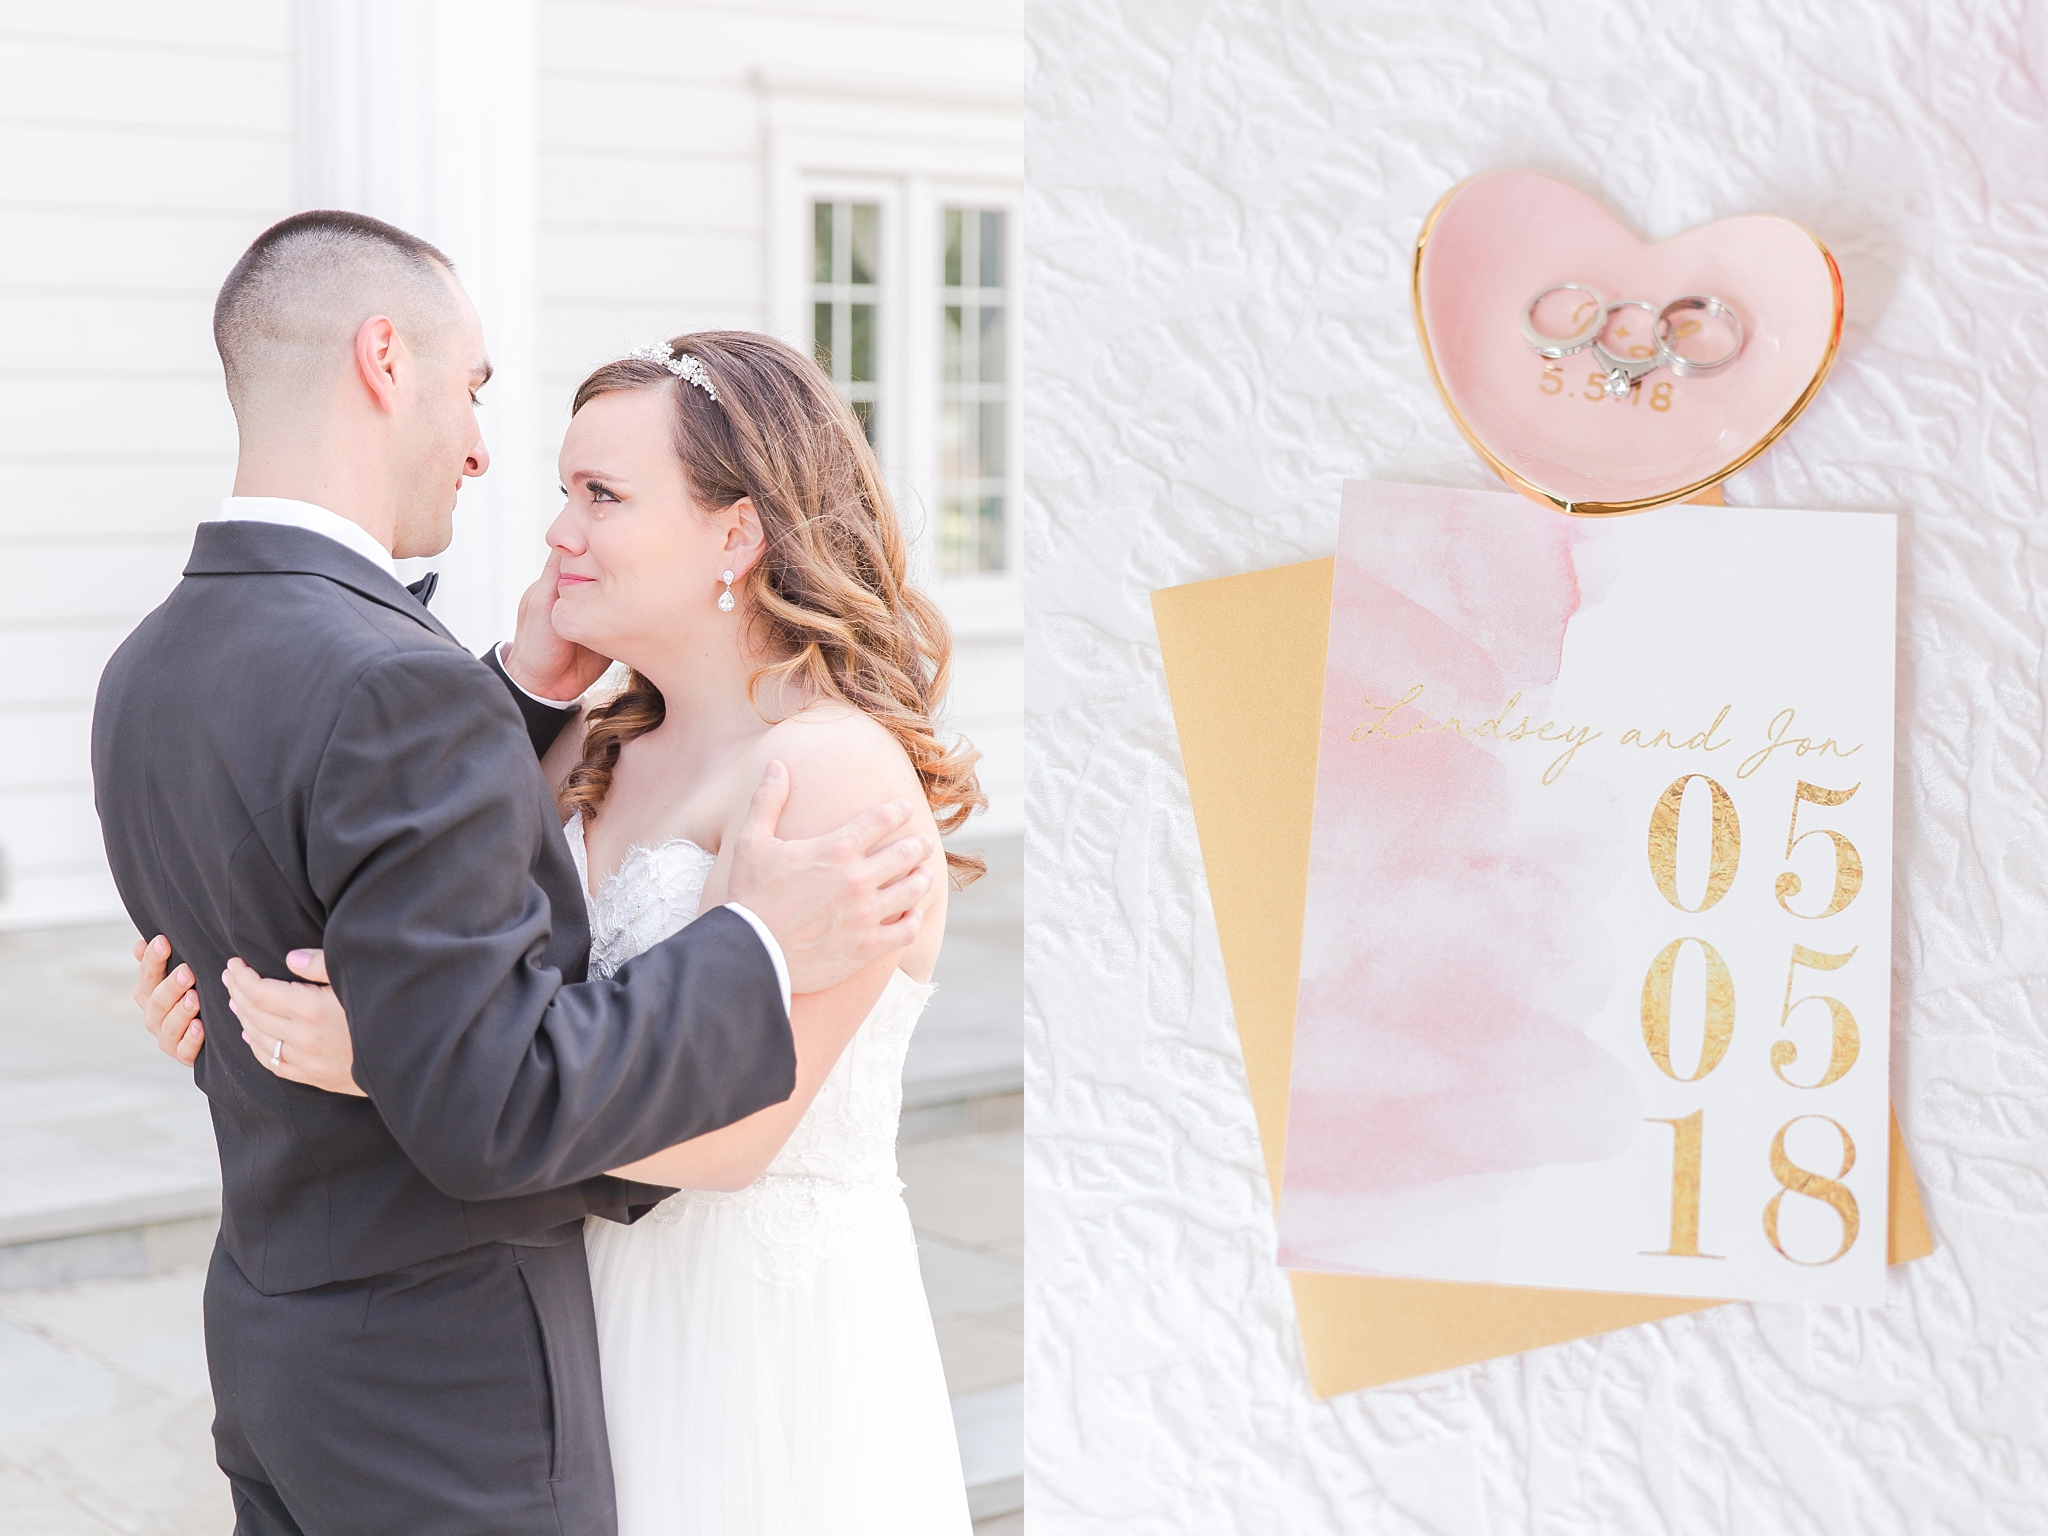 romantic-artful-candid-wedding-photos-in-st-clair-shores-at-the-white-house-wedding-chapel-by-courtney-carolyn-photography_0017.jpg